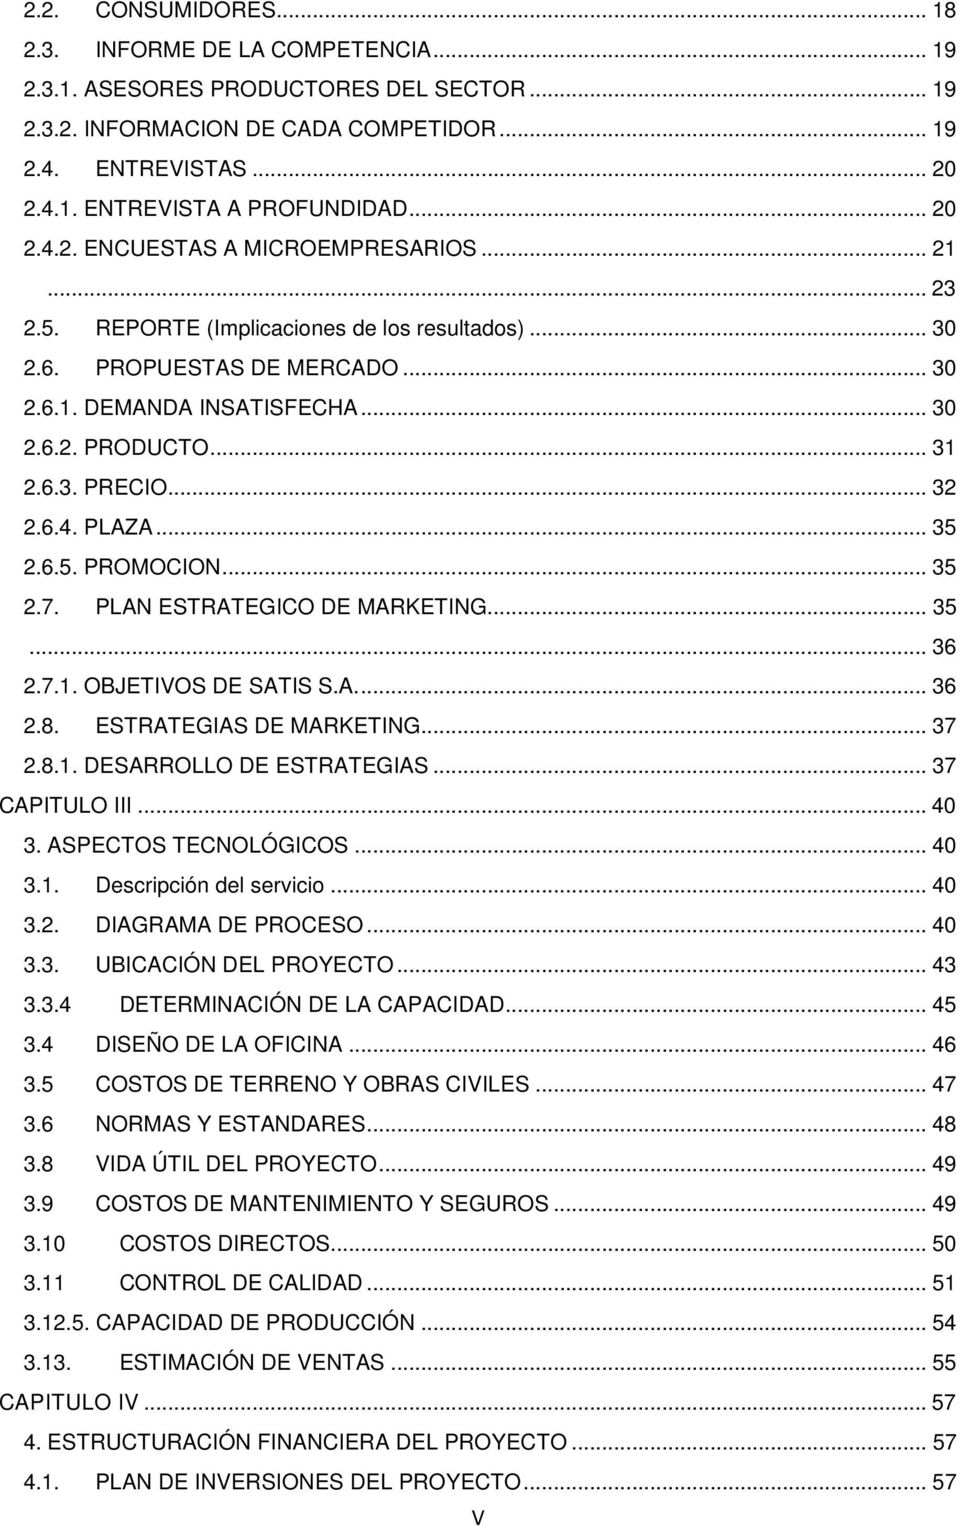 .. 32 2.6.4. PLAZA... 35 2.6.5. PROMOCION... 35 2.7. PLAN ESTRATEGICO DE MARKETING... 35... 36 2.7.1. OBJETIVOS DE SATIS S.A.... 36 2.8. ESTRATEGIAS DE MARKETING... 37 2.8.1. DESARROLLO DE ESTRATEGIAS.